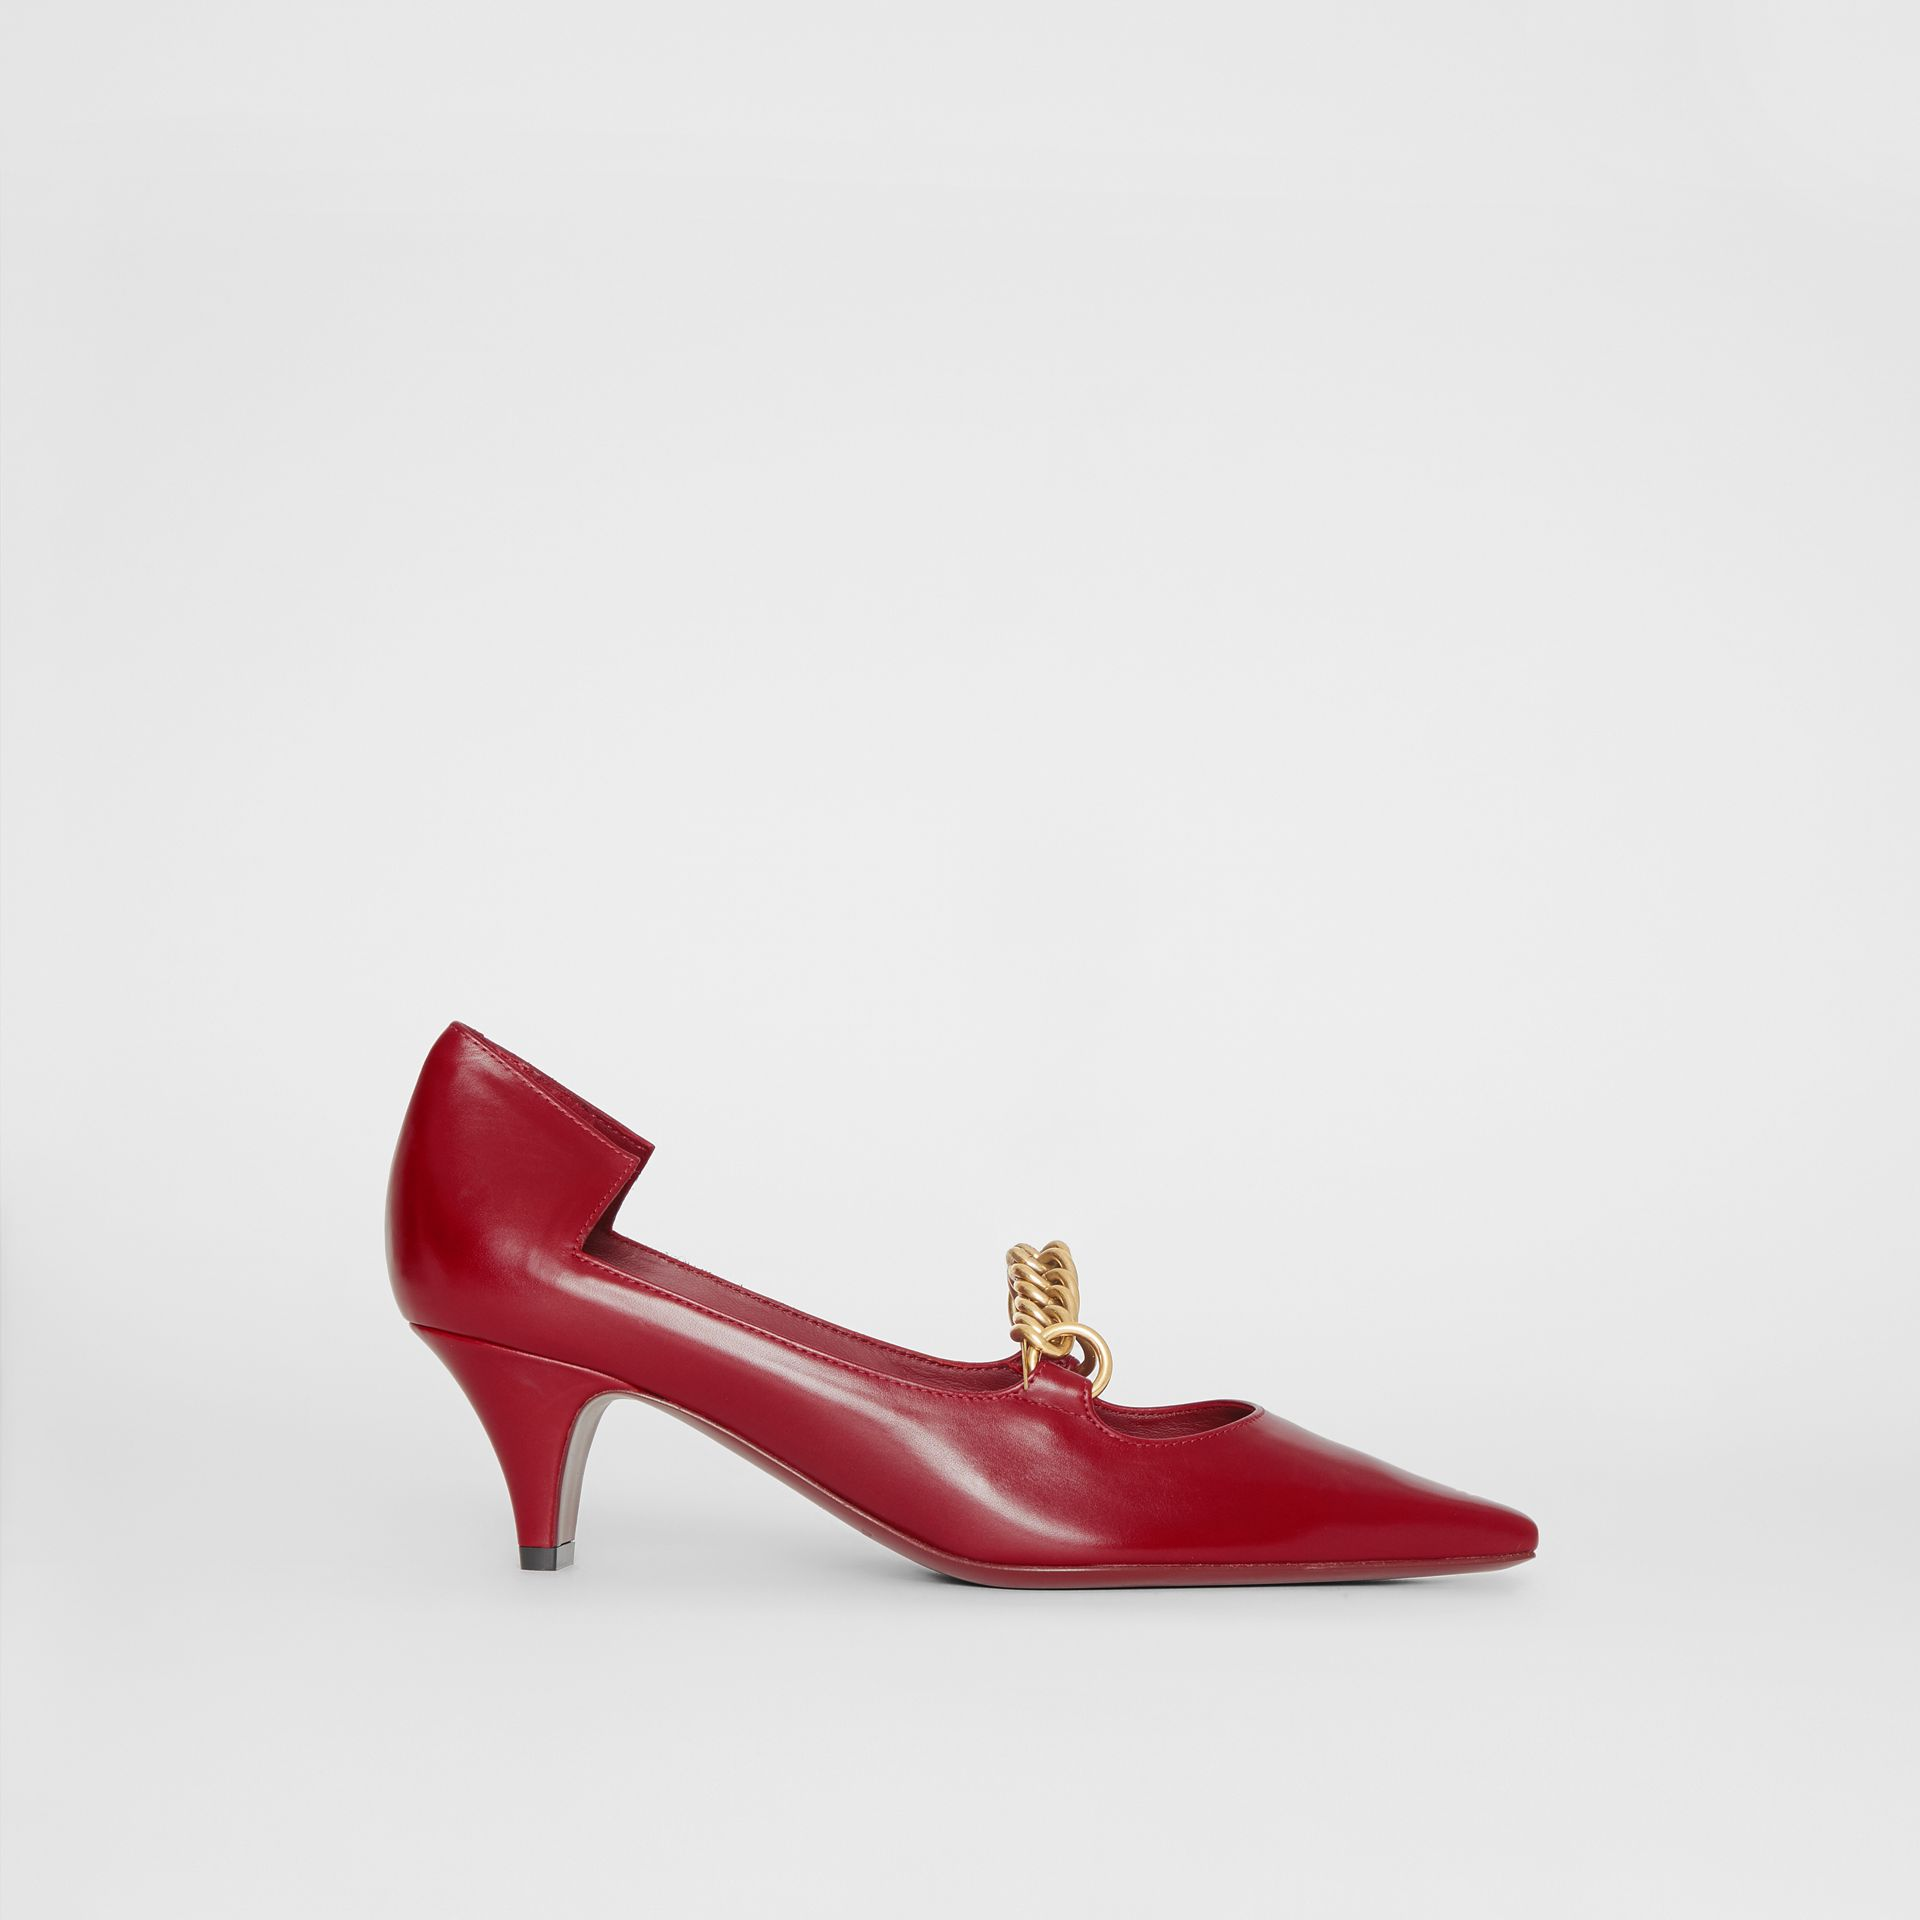 Link Detail Leather Point-toe Pump in Claret - Women | Burberry - gallery image 5